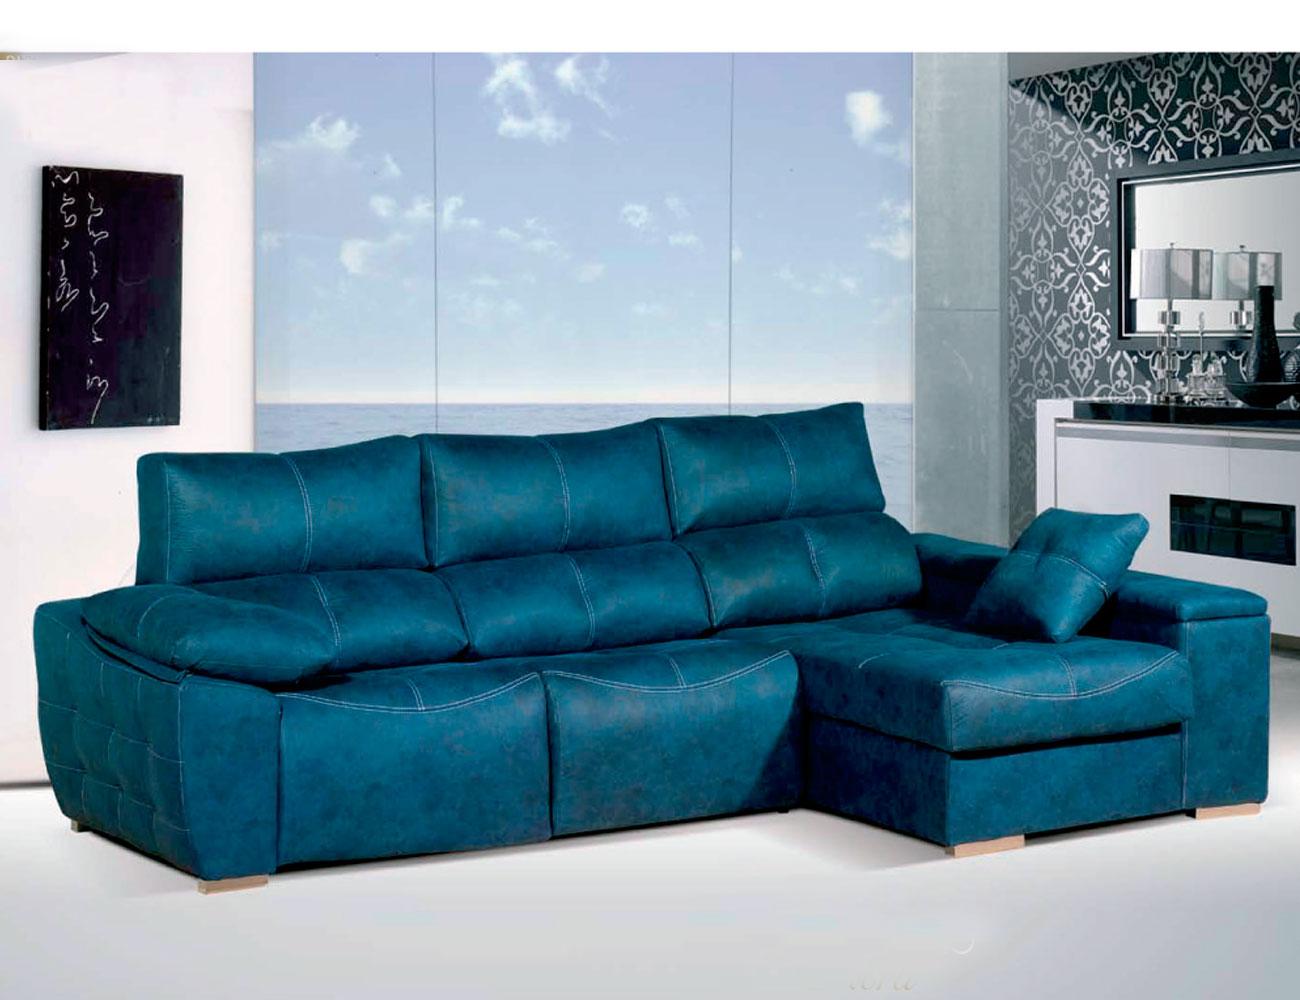 Sofa chaiselongue relax 2 motores anti manchas turquesa26